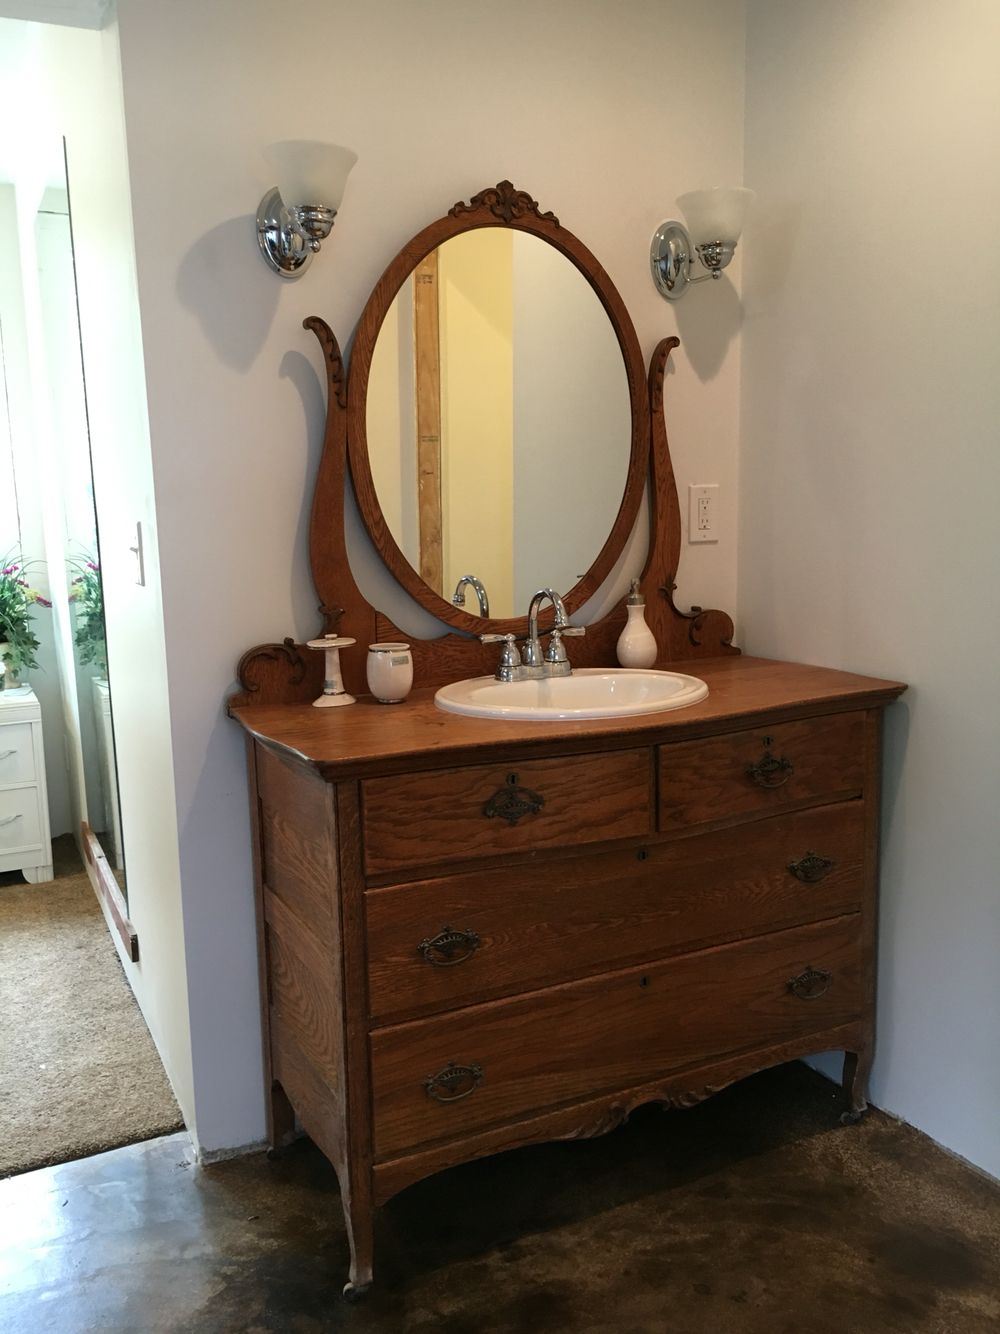 Dresser Turned Bathroom Vanity Tutorial: Tiger Oak Dresser Turned Vanity.